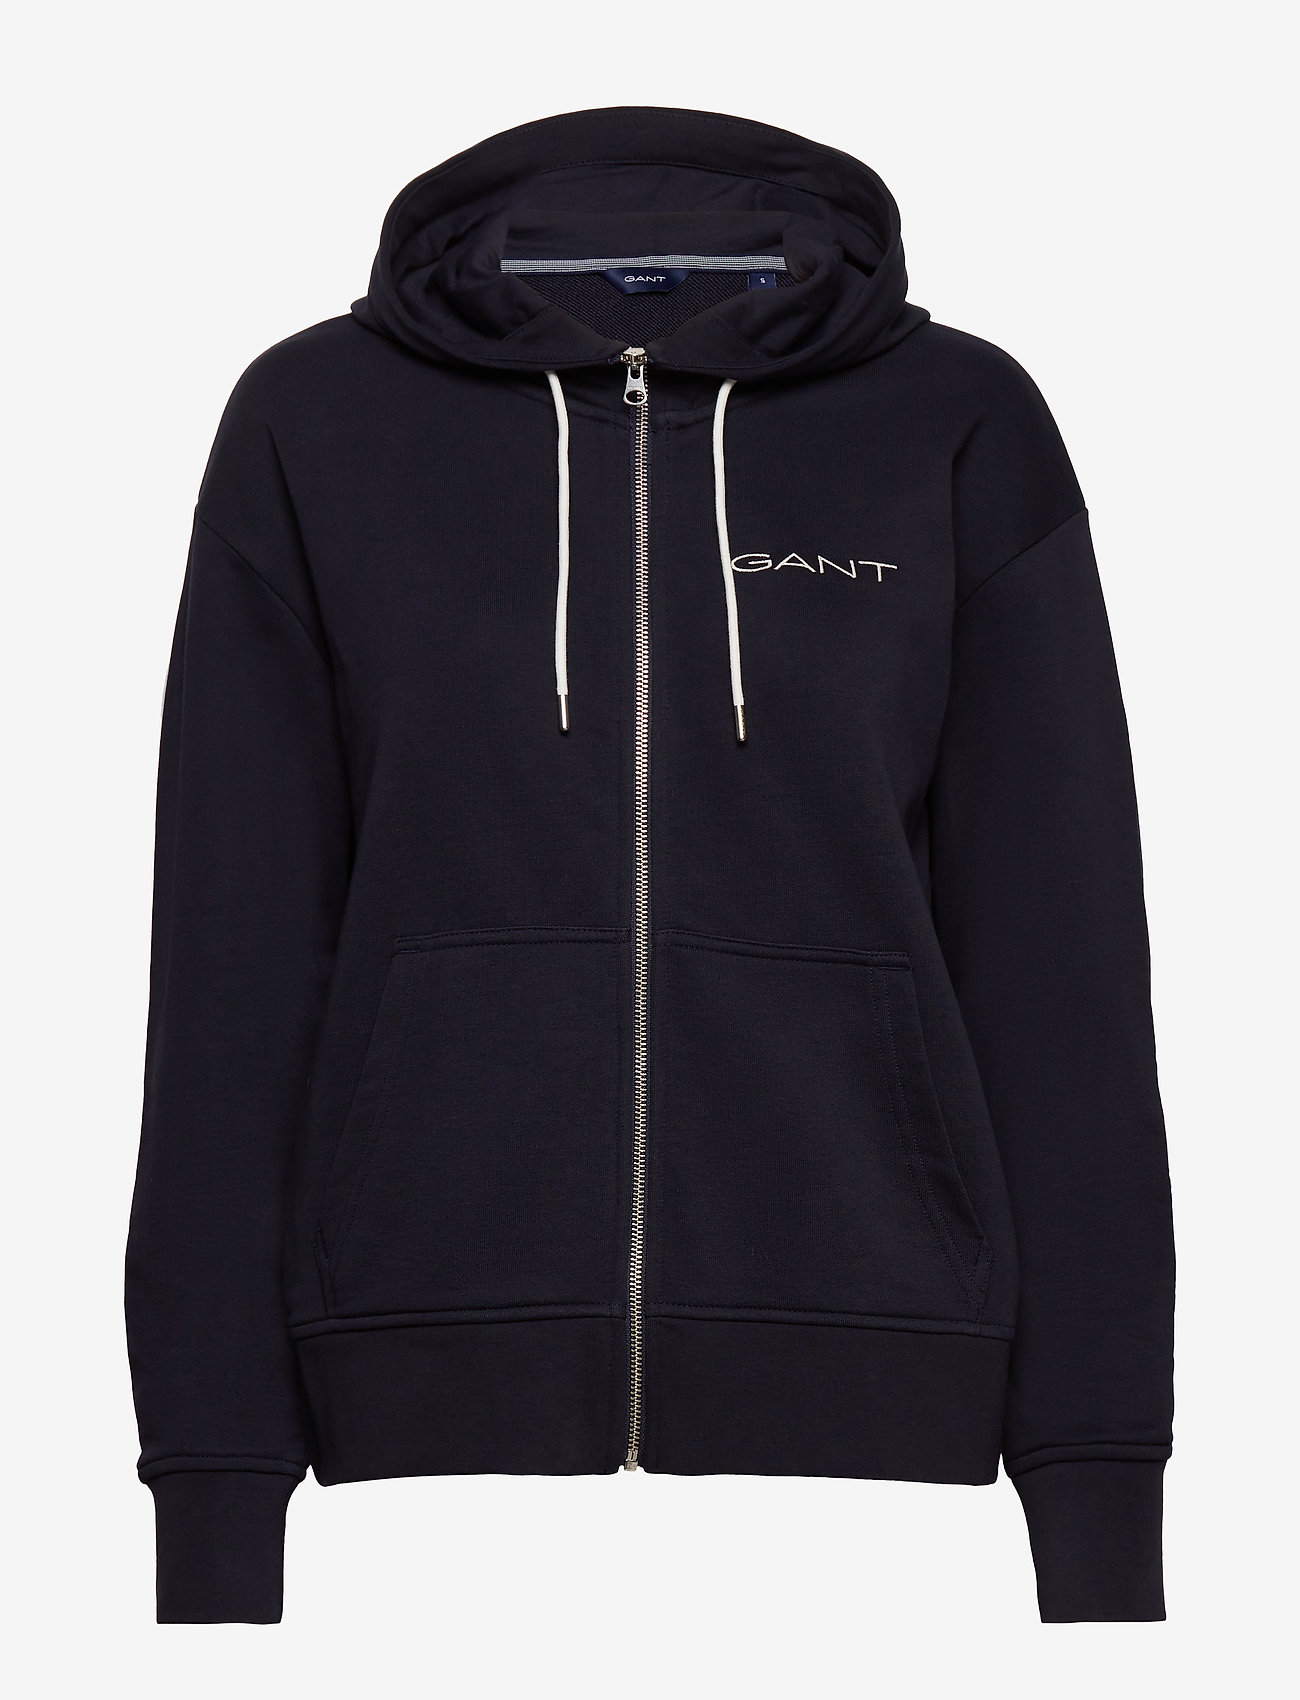 GANT - D1. 13 STRIPES FULL ZIP HOODIE - hoodies - evening blue - 0